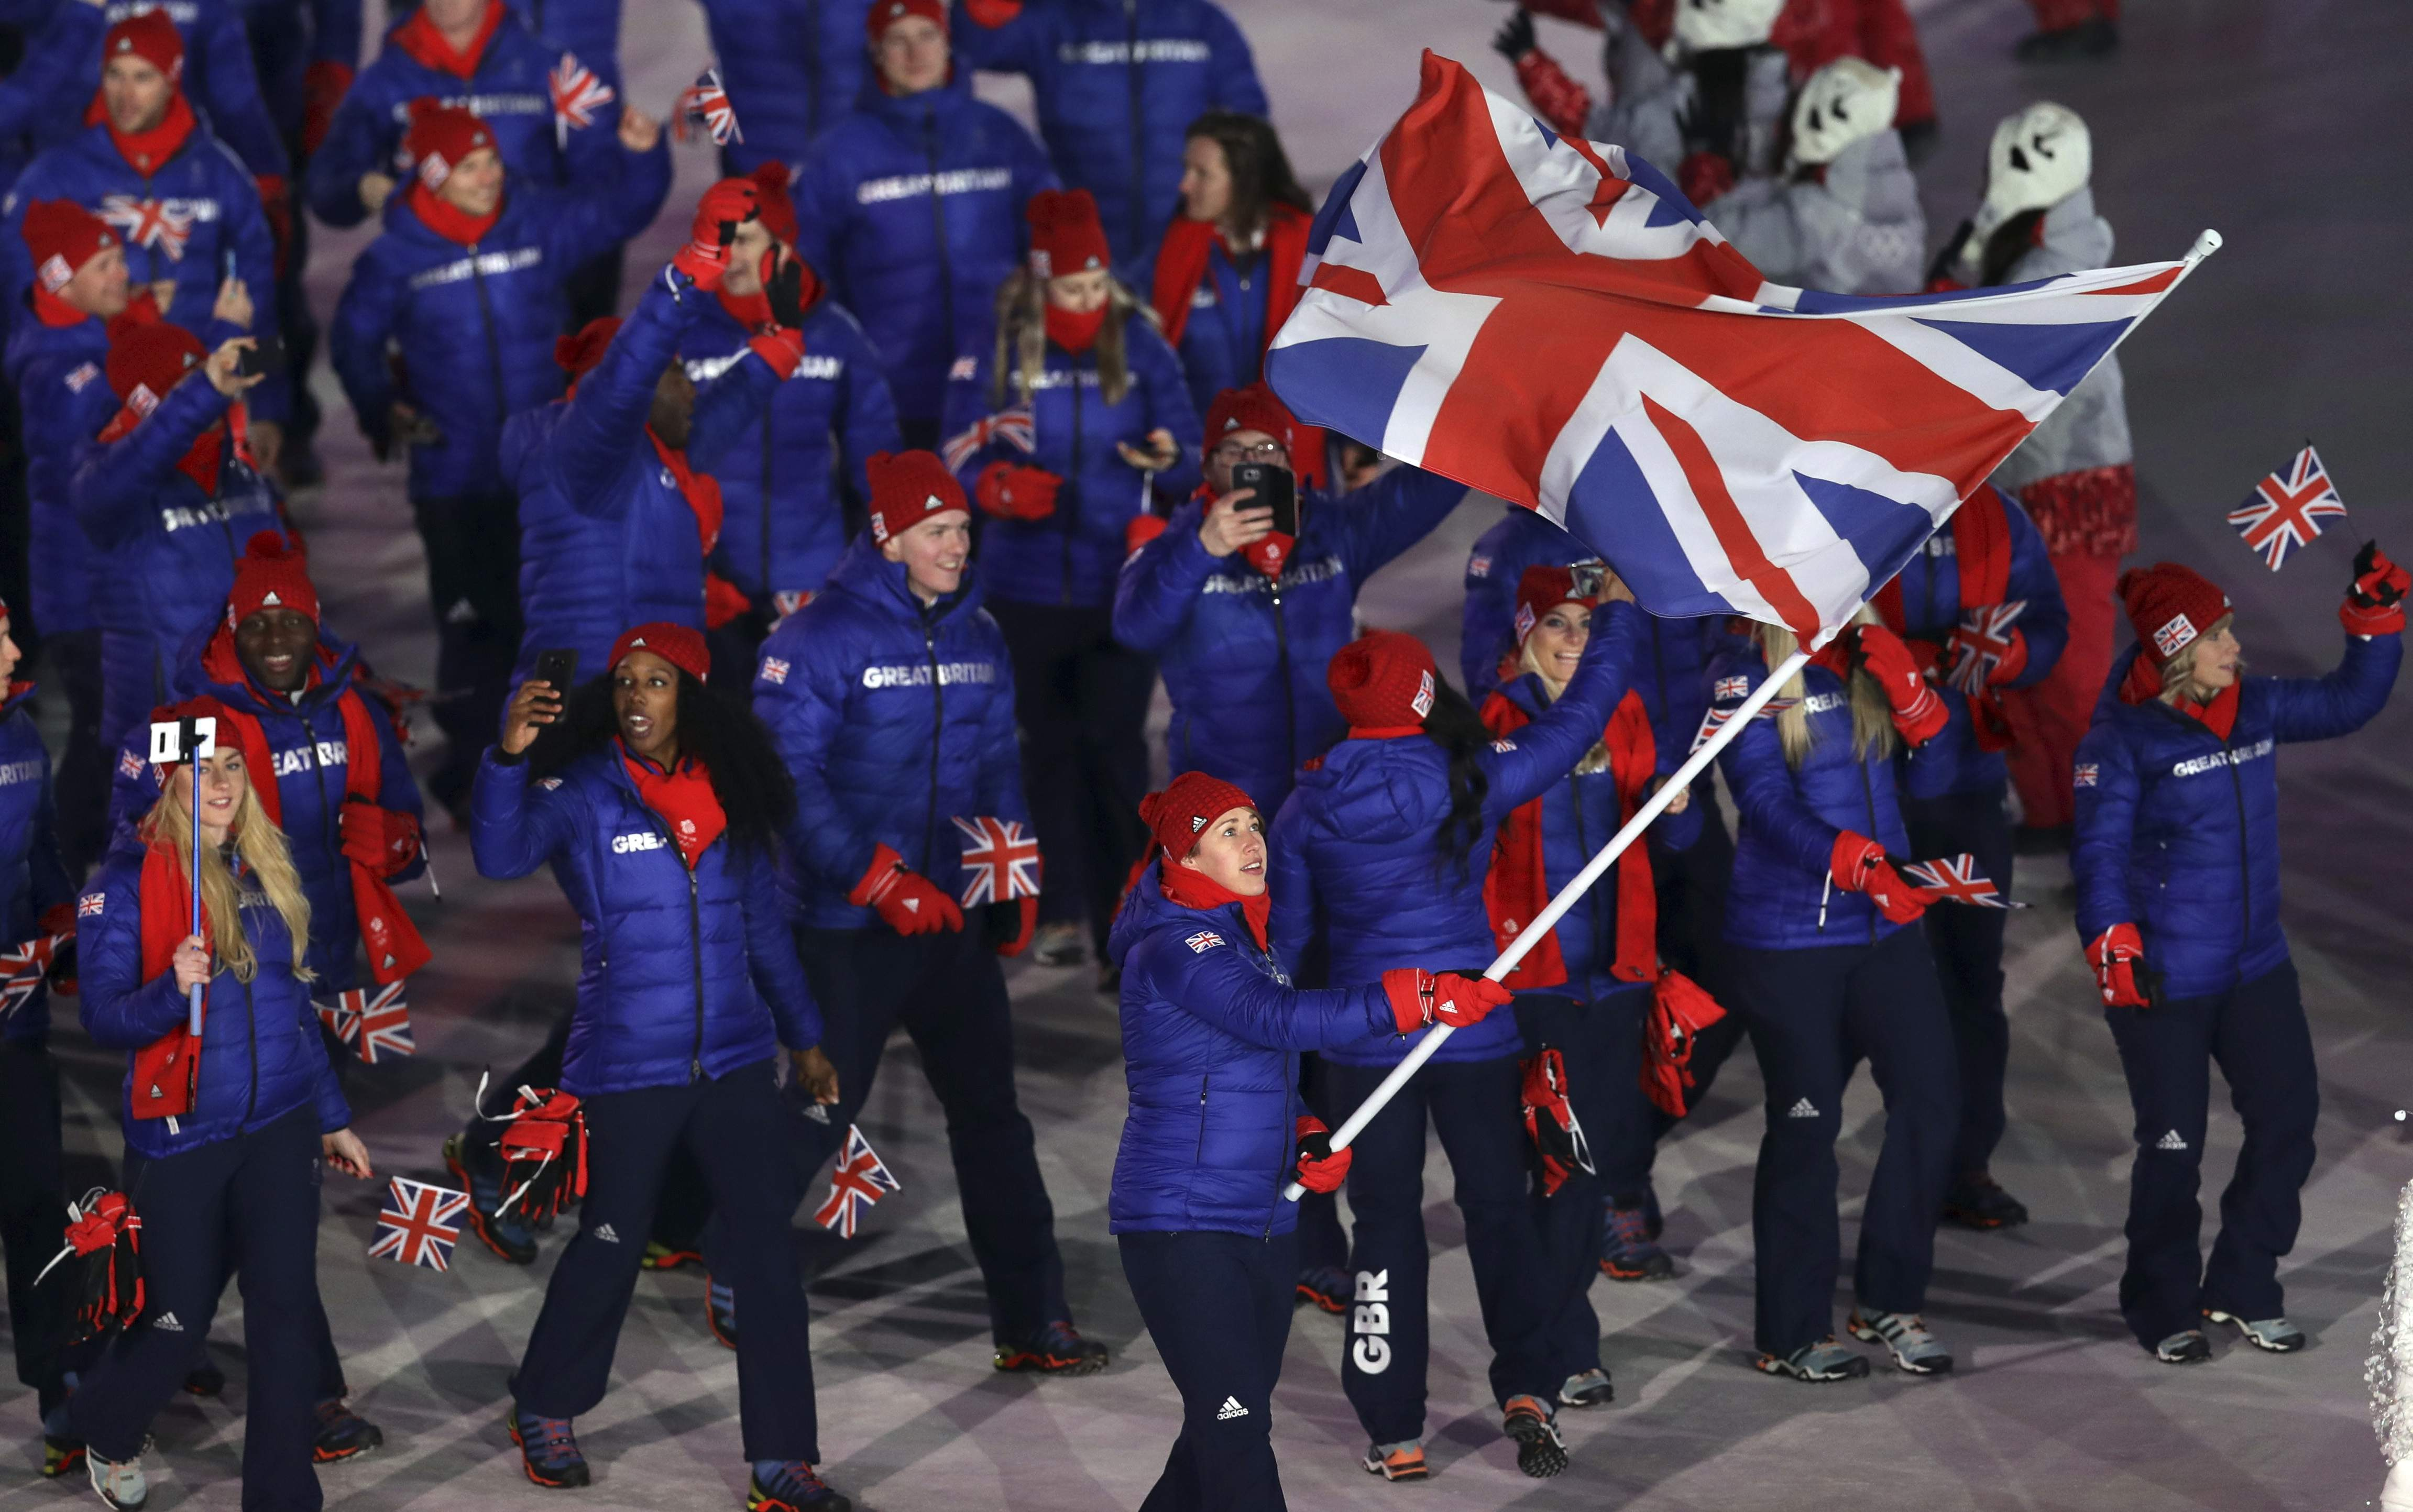 Lizzy Yarnold carries the flag of Britain during the opening ceremony of the 2018 Winter Olympics in Pyeongchang, South Korea, Friday, Feb. 9, 2018. (AP Photo/Michael Sohn)